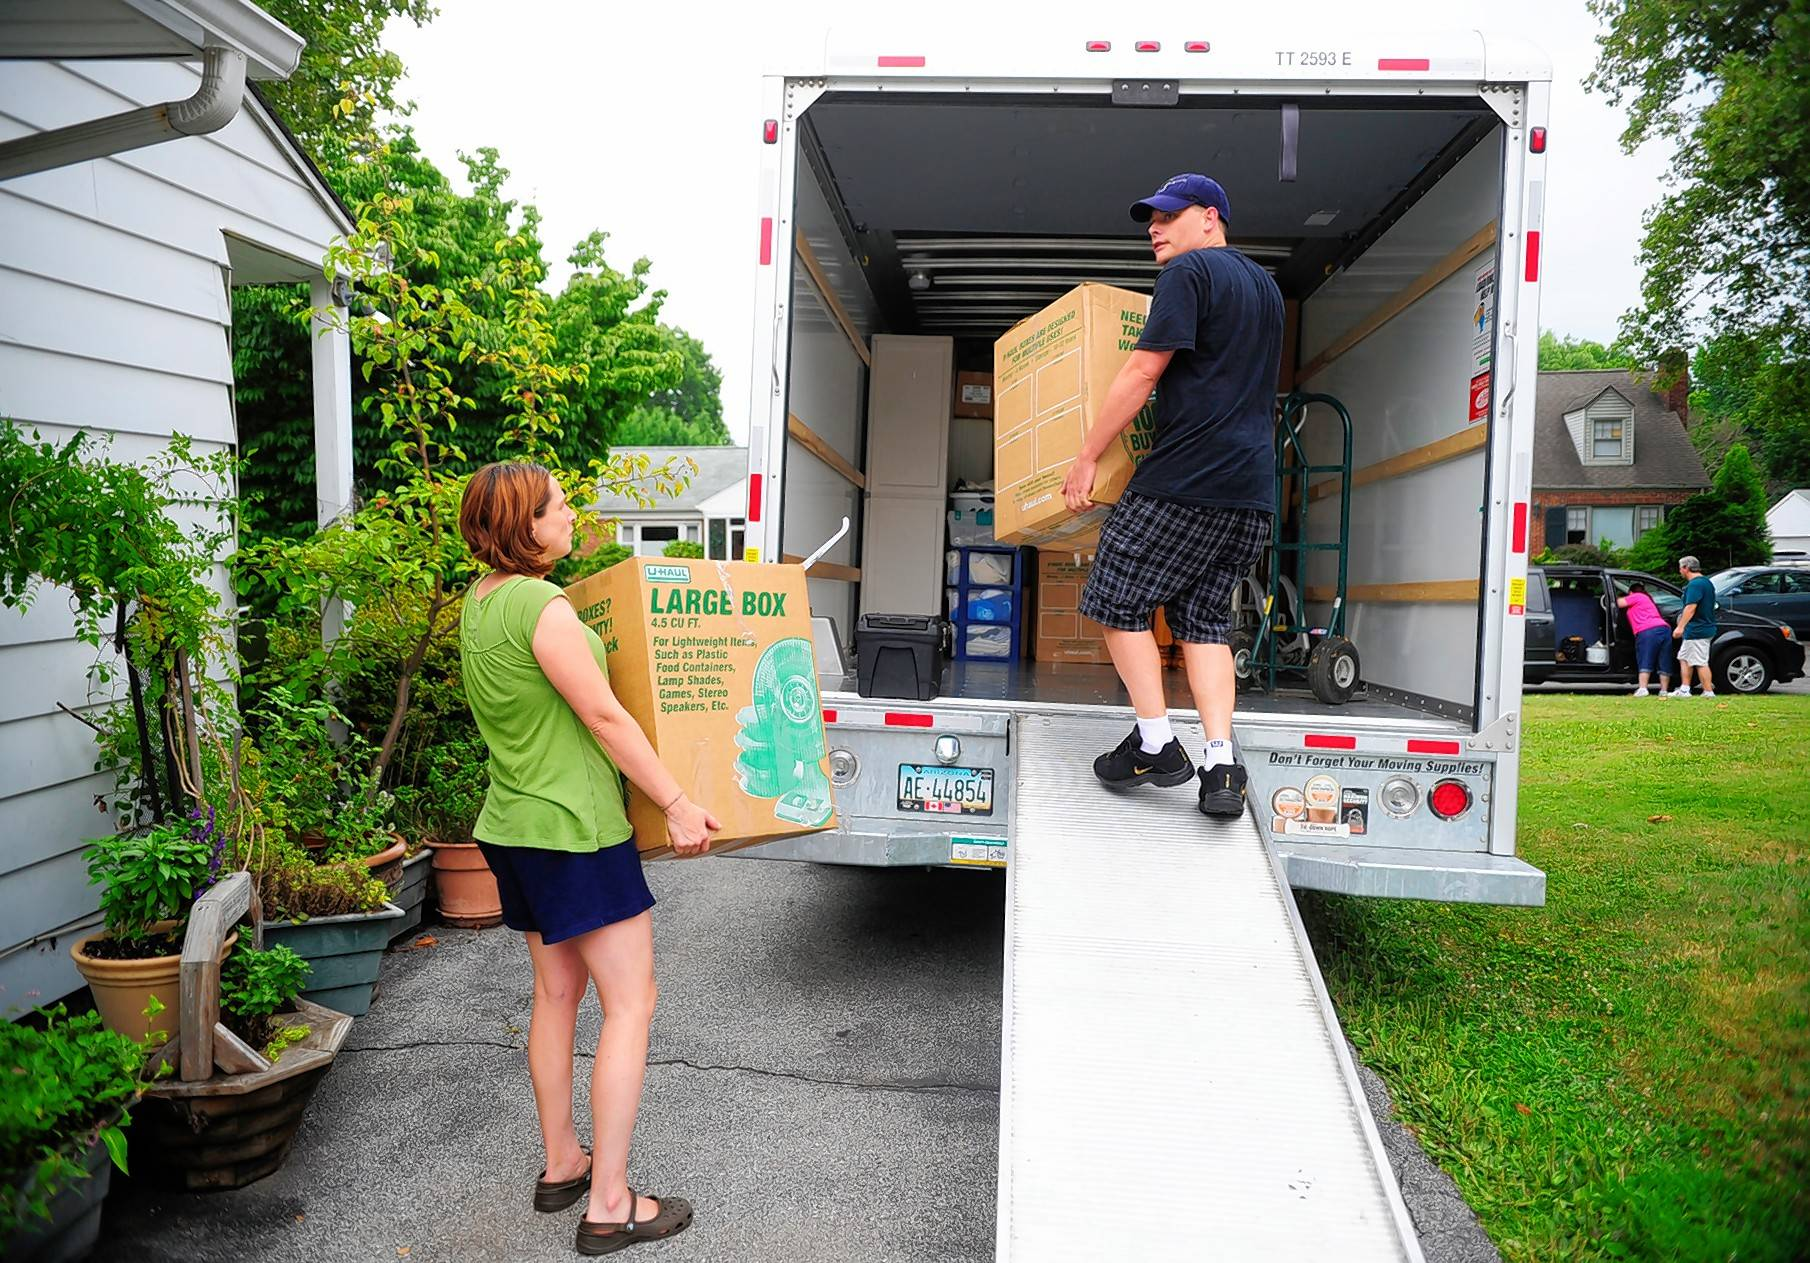 Moving to a new place can be taxing, emotionally and financially. Preparing a budget can help.